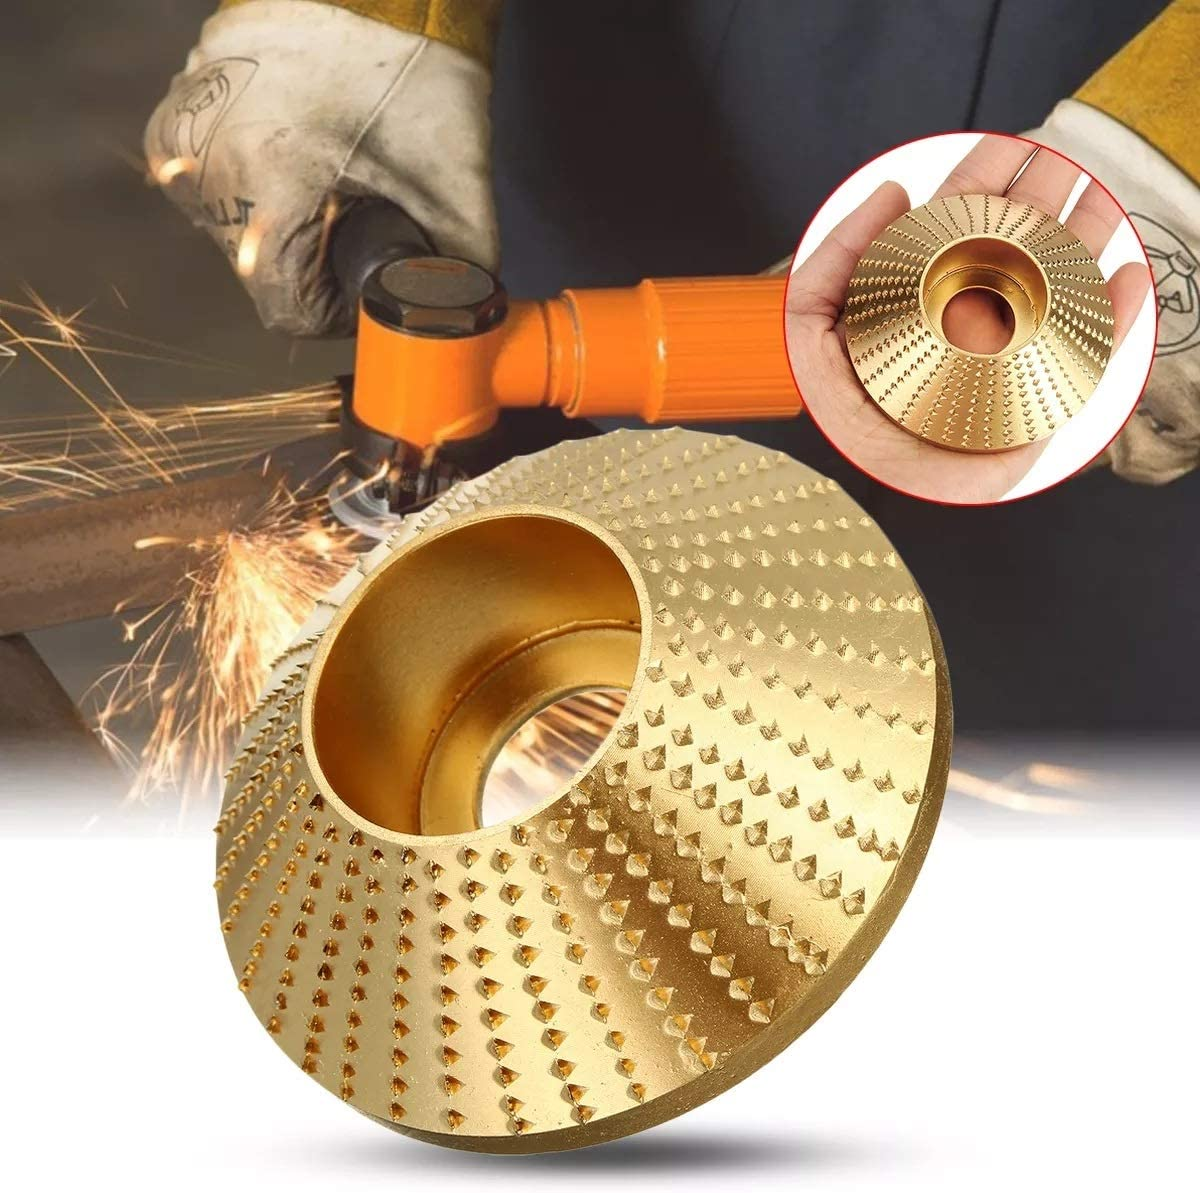 Ctghgyiki 45 Degree Wood Grinding Wheel ID16mm Sanding Carving Disc for Angle Grinder 75x16mm Woodworking Tools